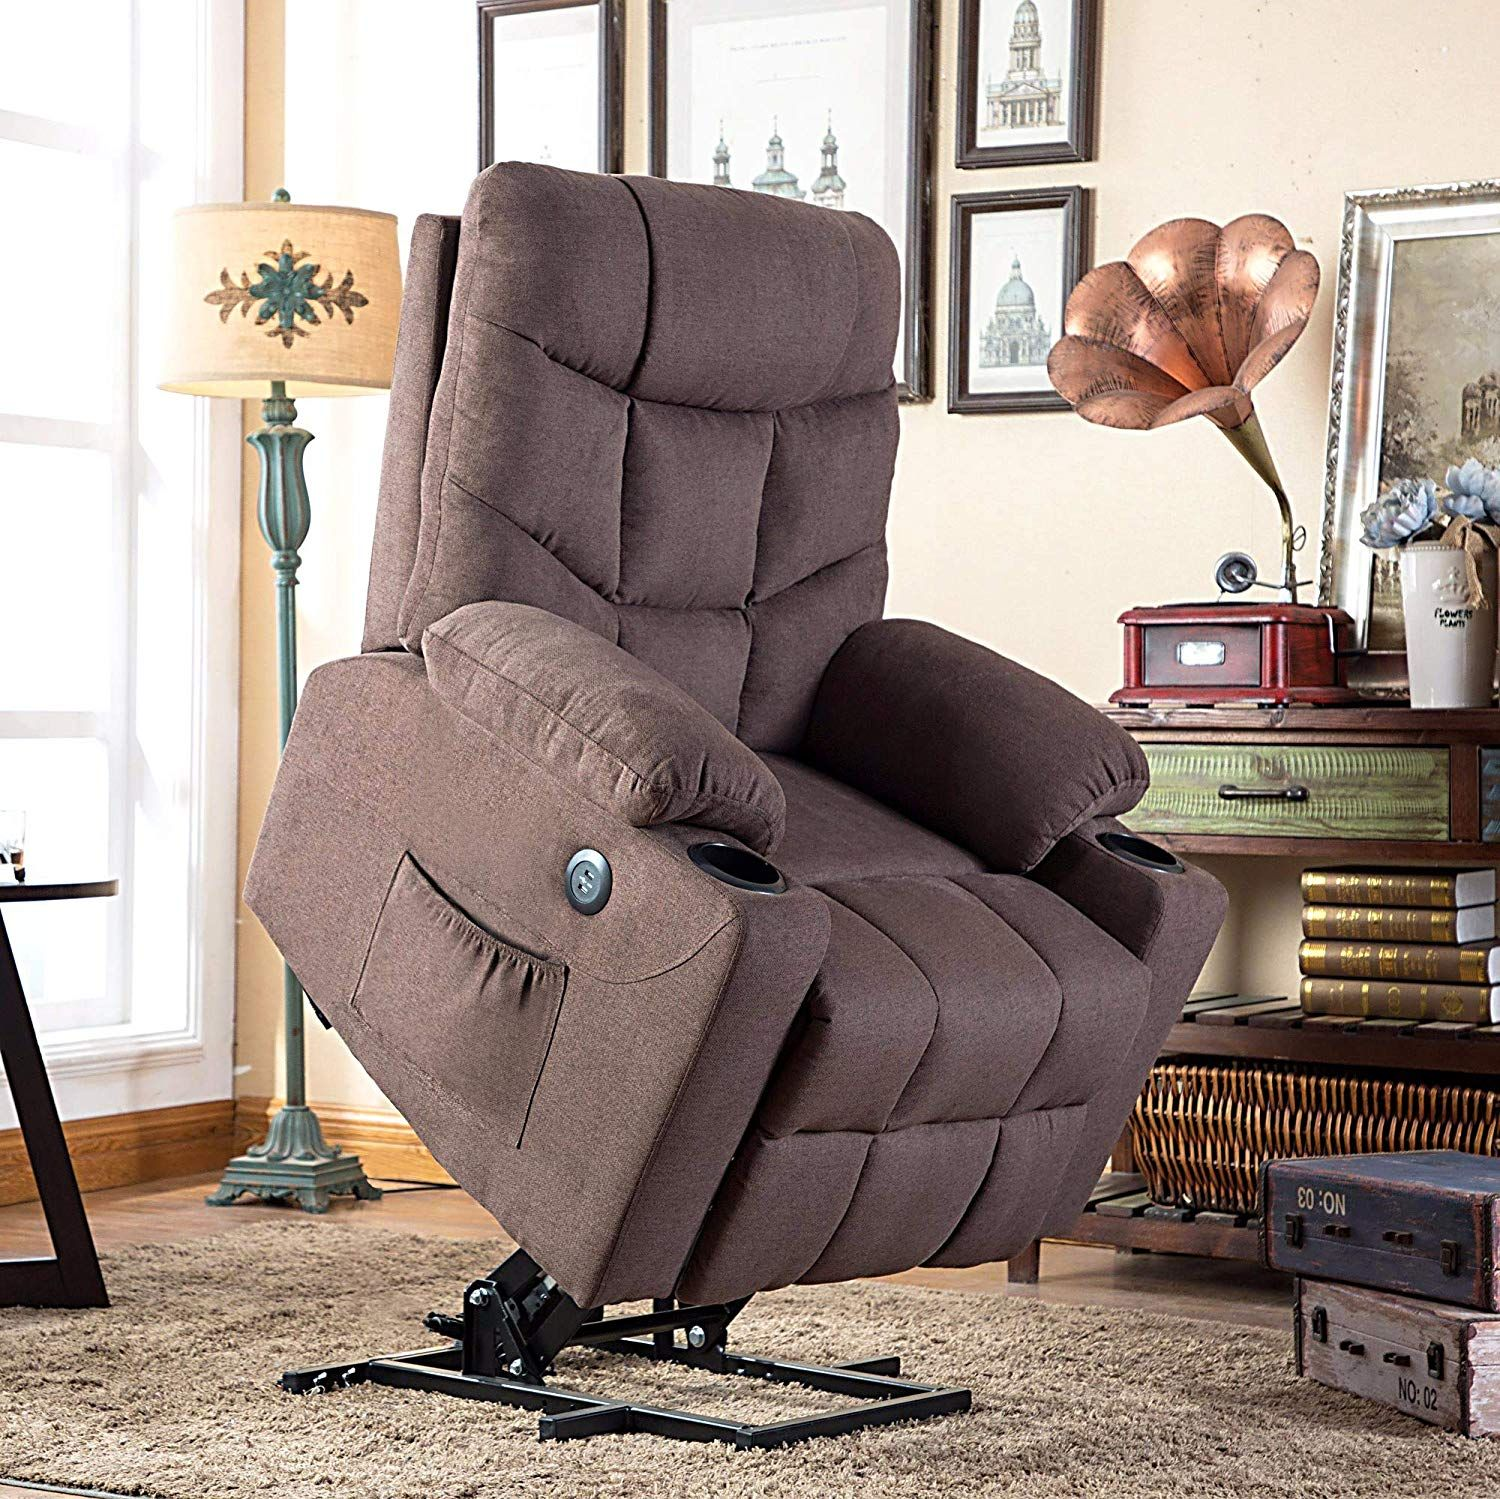 Electric power lift recliner chair sofa for elderly